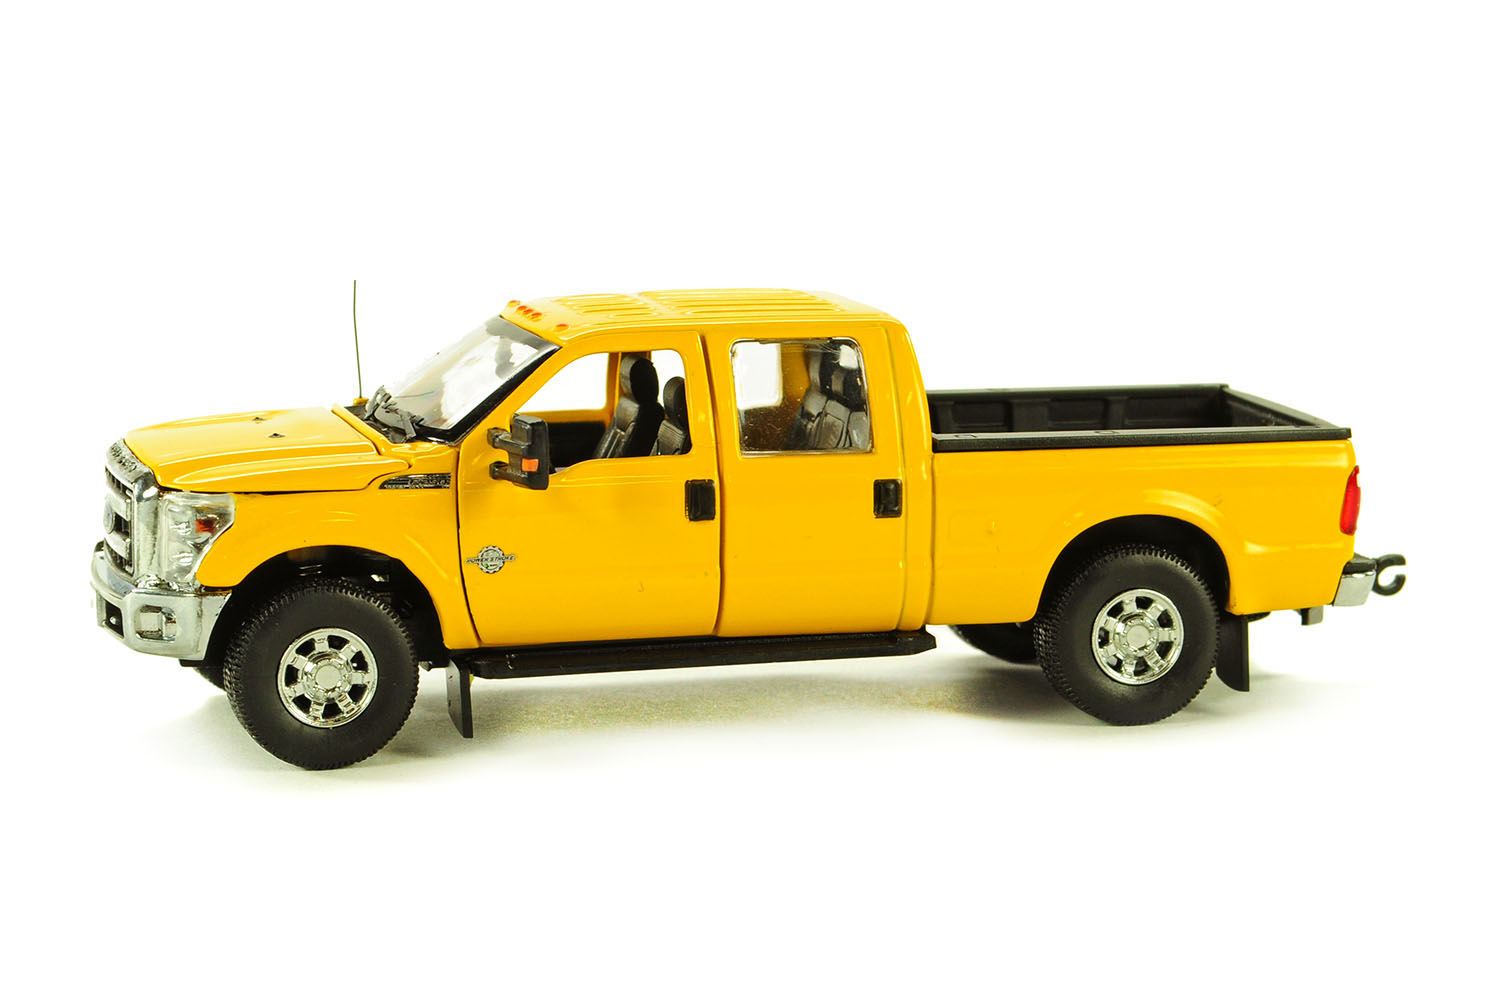 Straight Trucks Dhs Diecast Collectables Inc 1949 Ford Crew Cab F250 Pickup Truck W 6ft Bed Yellow